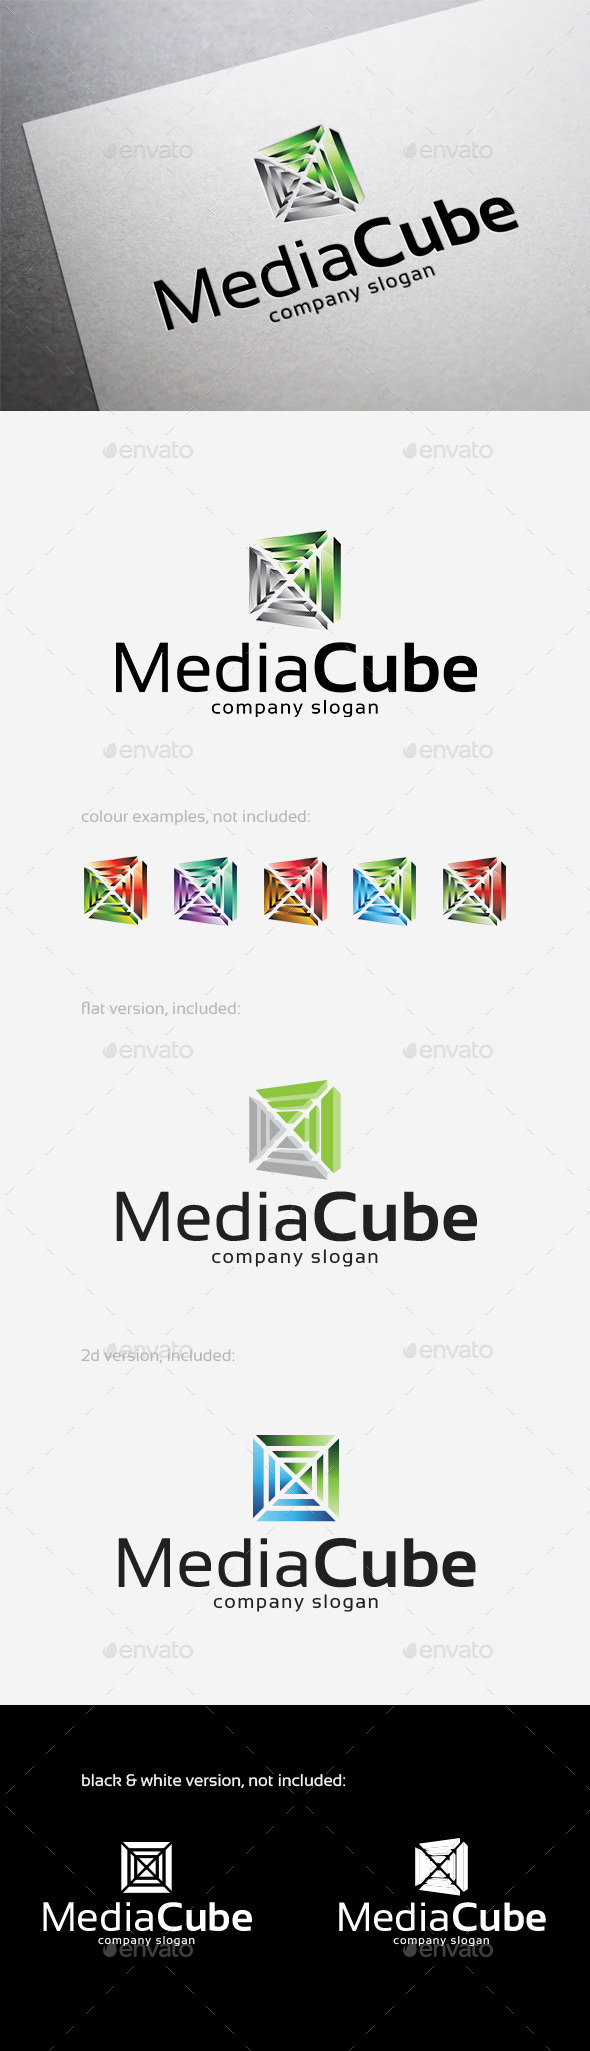 Media Cube Logo - Abstract Logo Templates